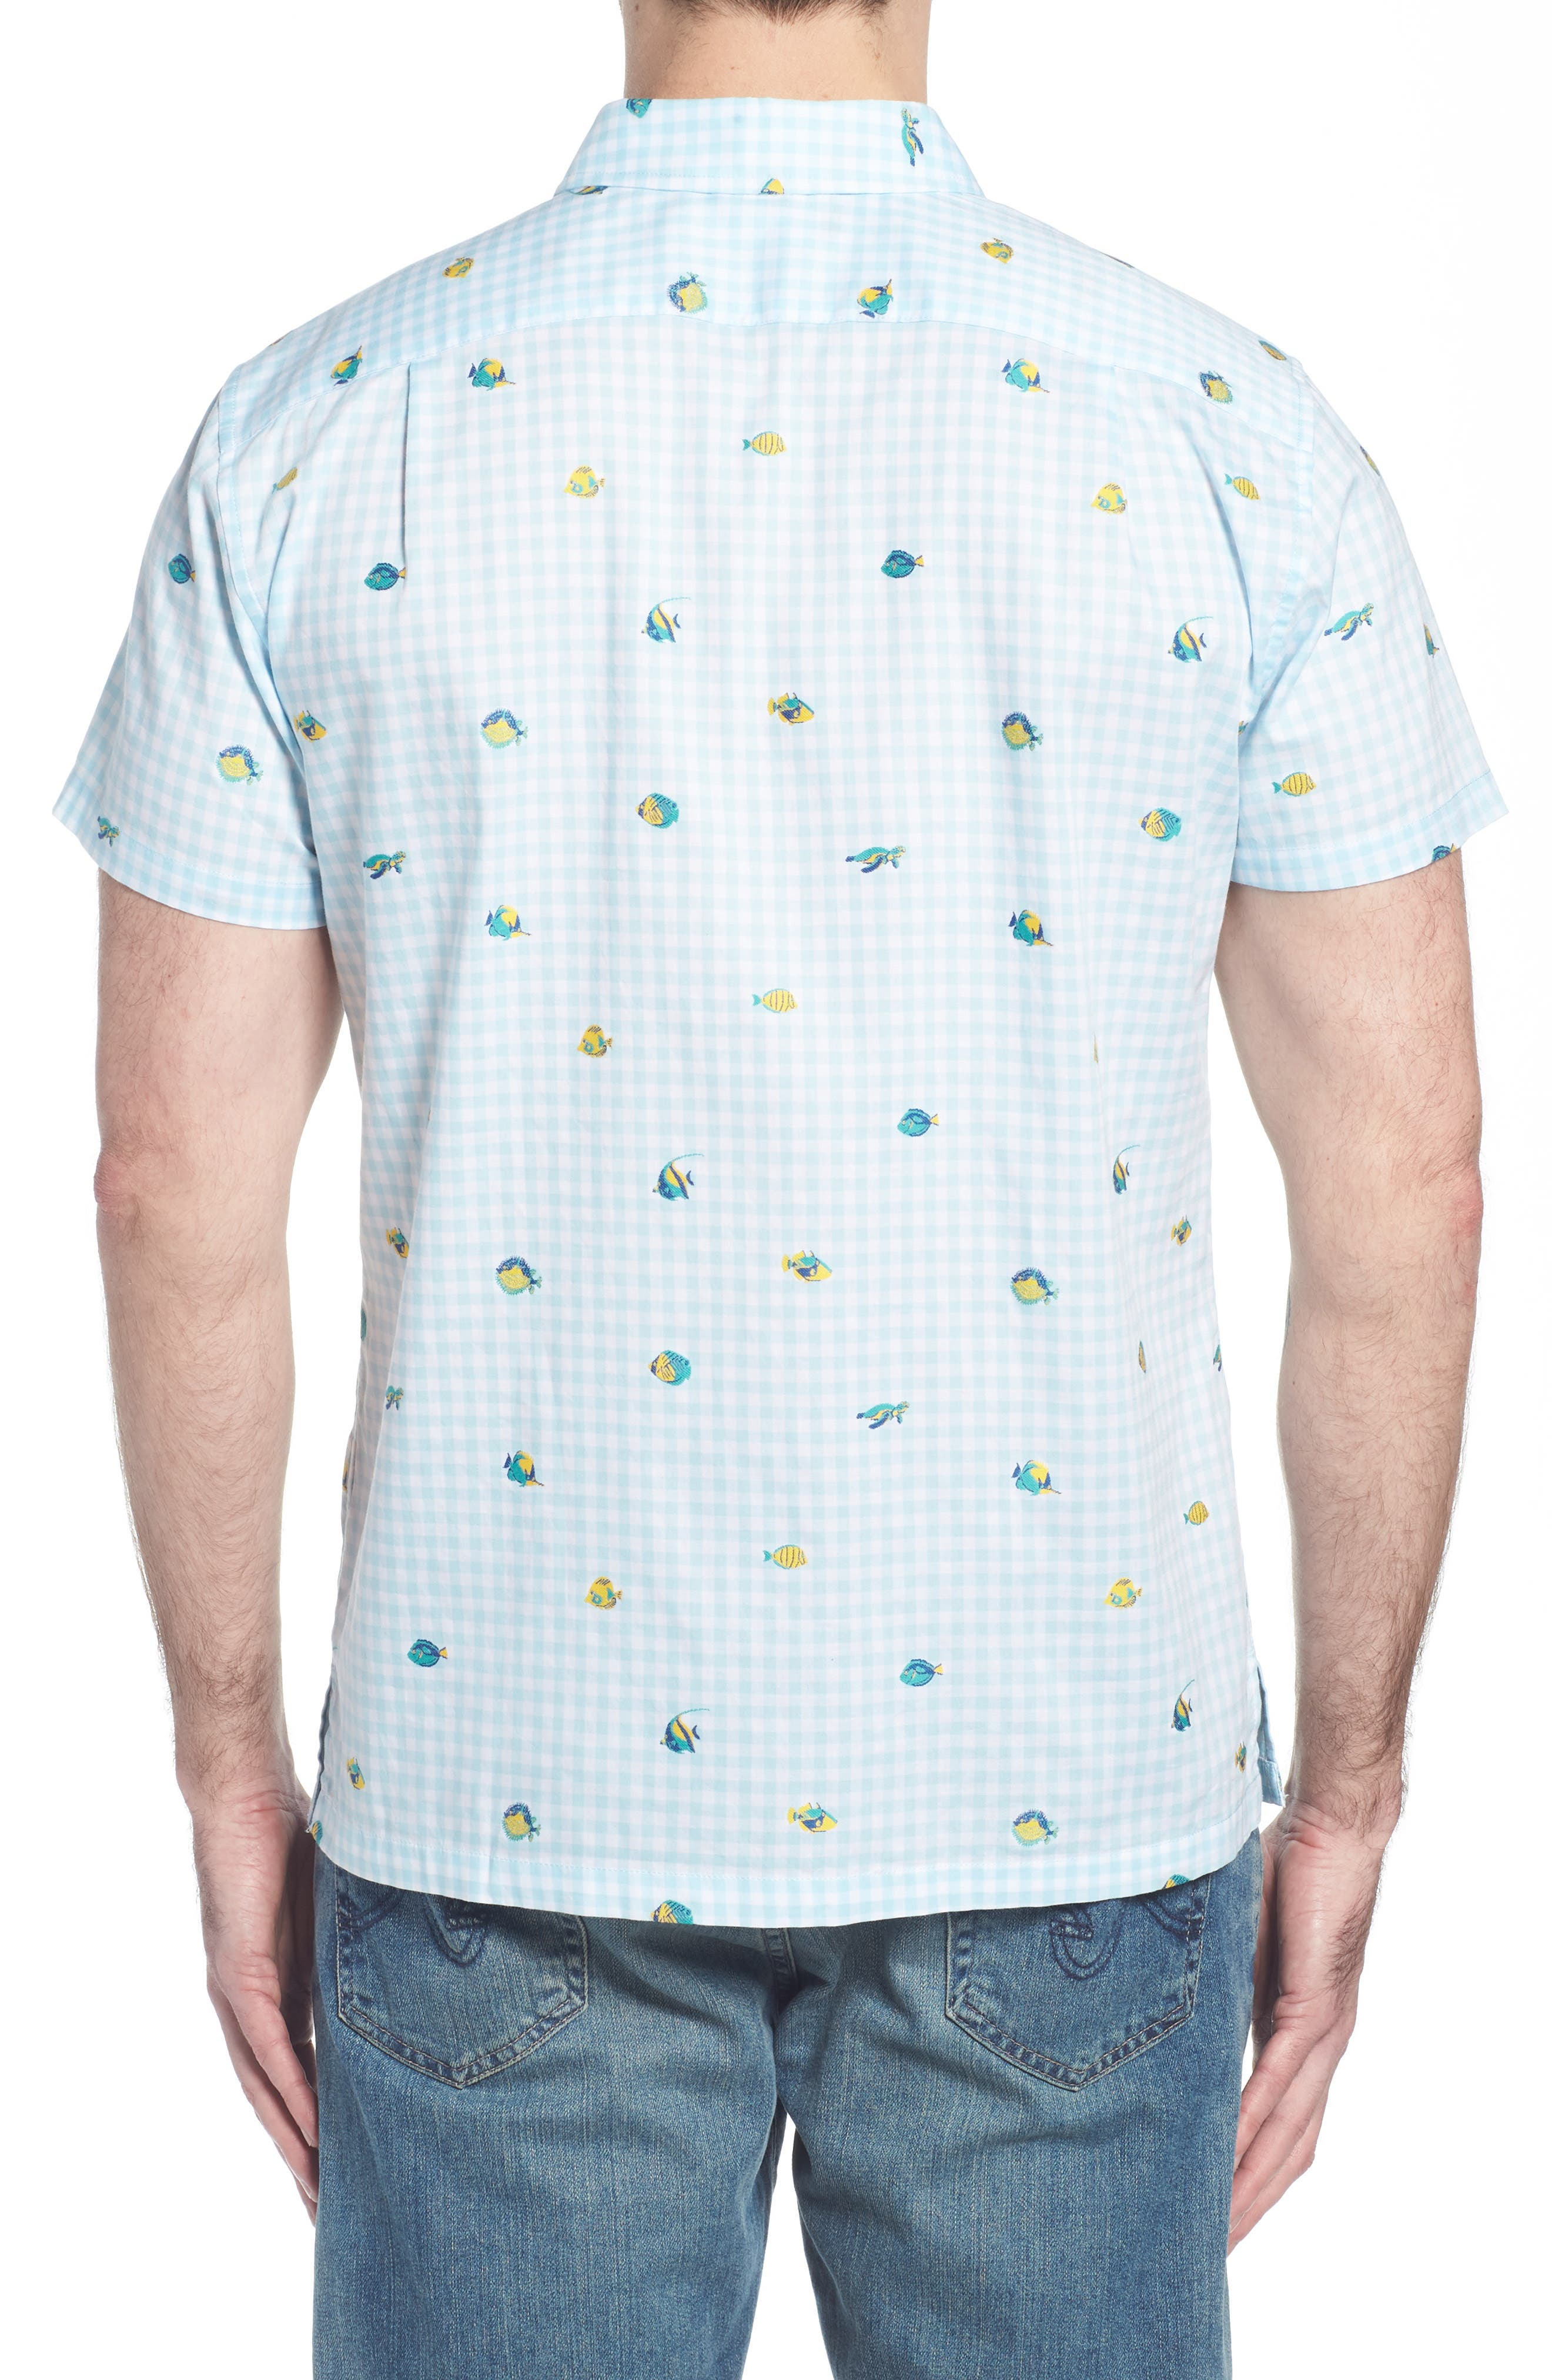 Picnic Reef Trim Fit Embroidered Camp Shirt,                             Alternate thumbnail 4, color,                             Sky Blue